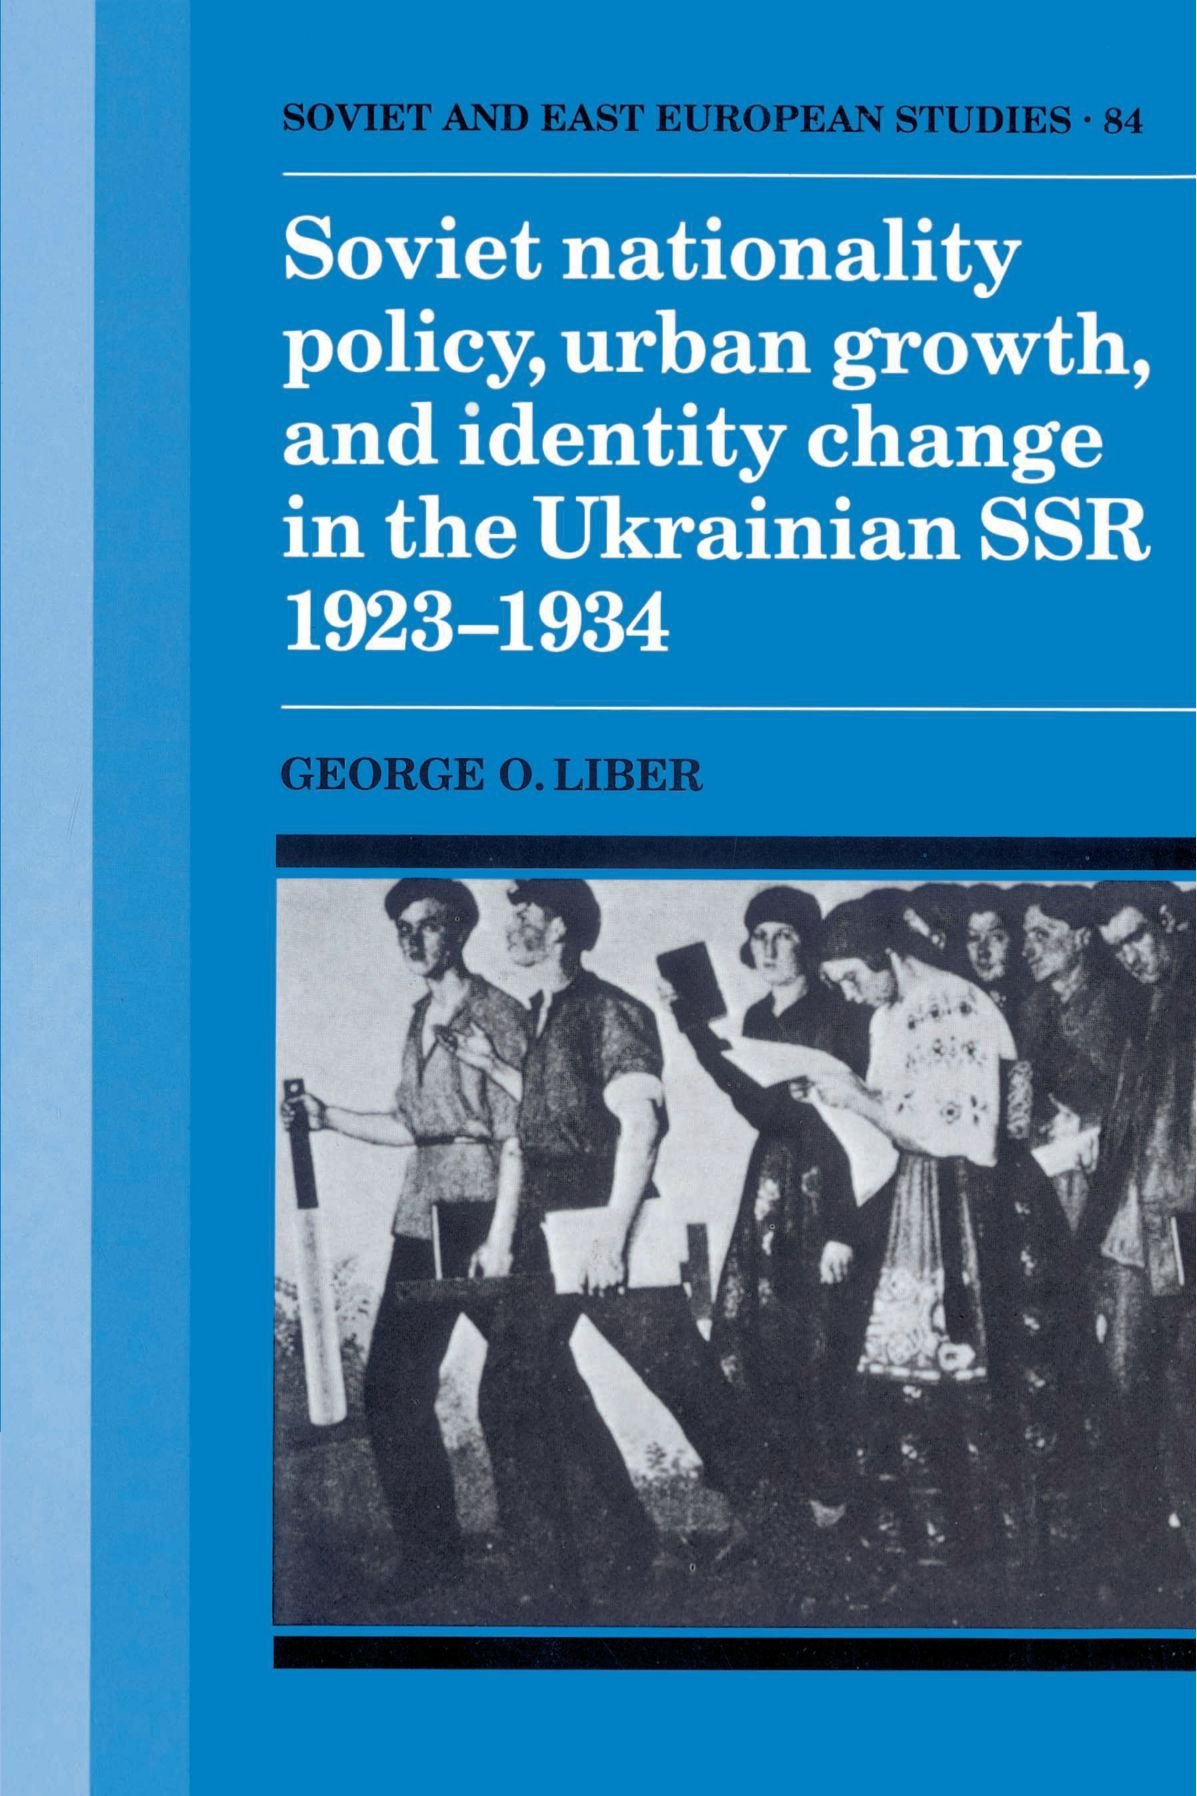 Soviet Nationality Policy, Urban Growth, and Identity Change in the Ukrainian SSR 1923-1934 (Cambridge Russian, Soviet and Post-Soviet Studies) ebook